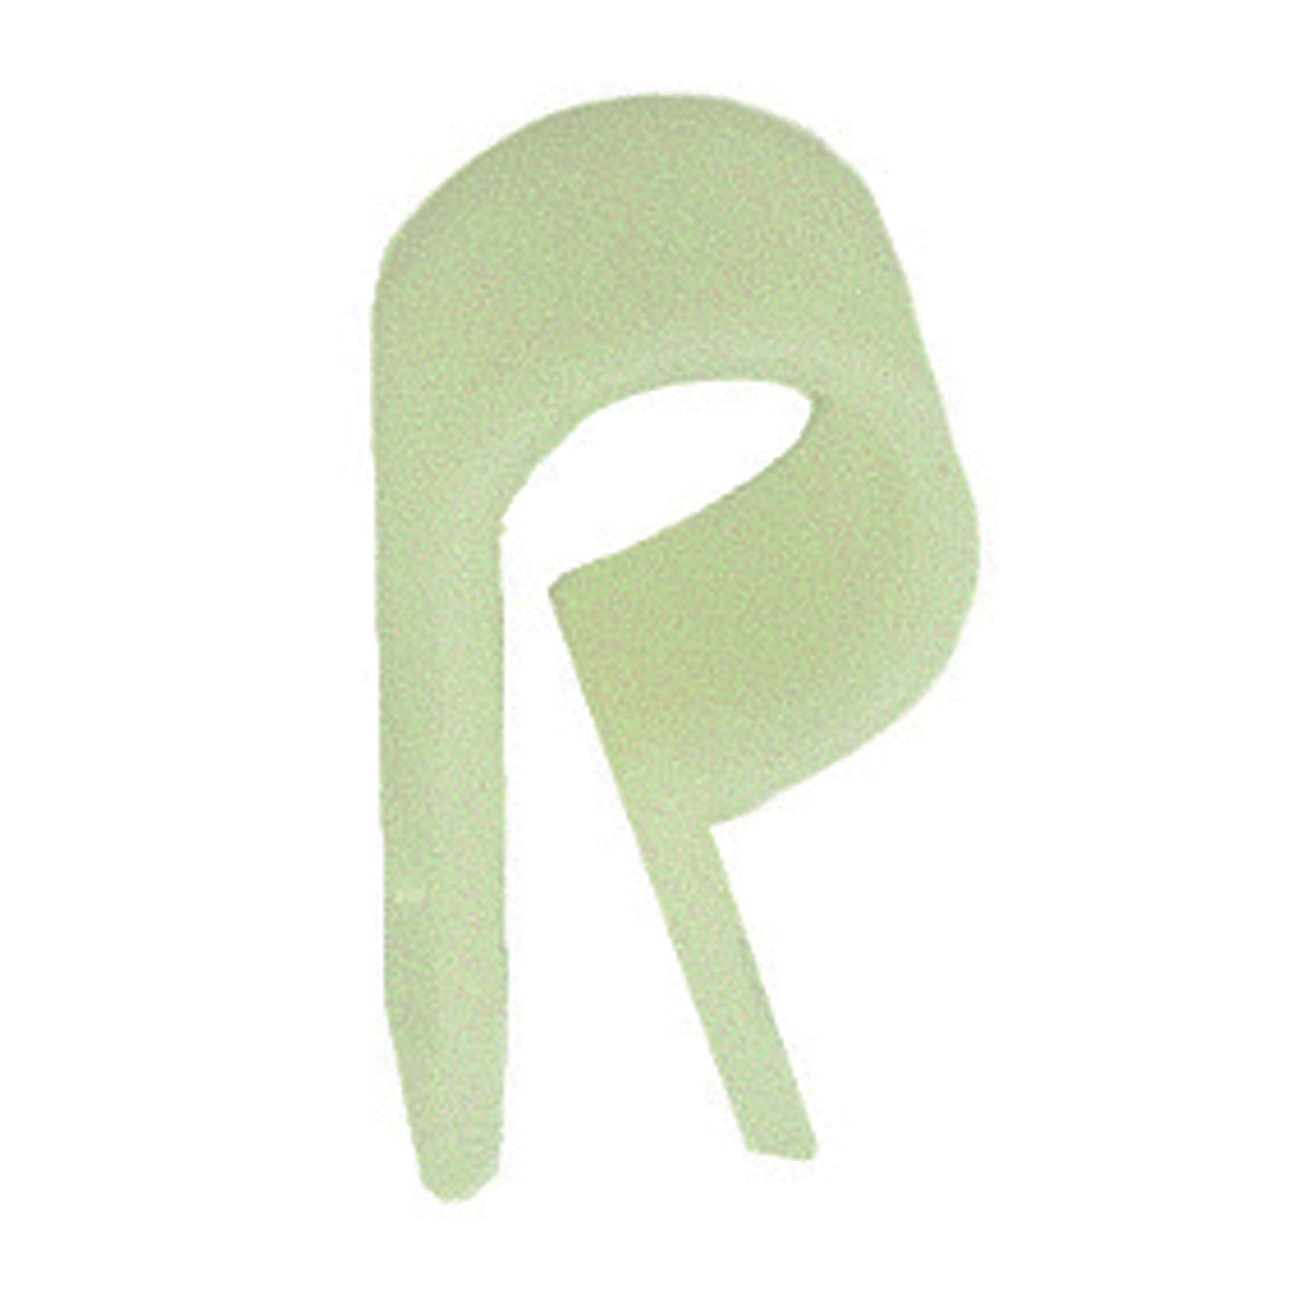 Picture of Jandorf 61469 Cable Clamp, Nylon, Natural